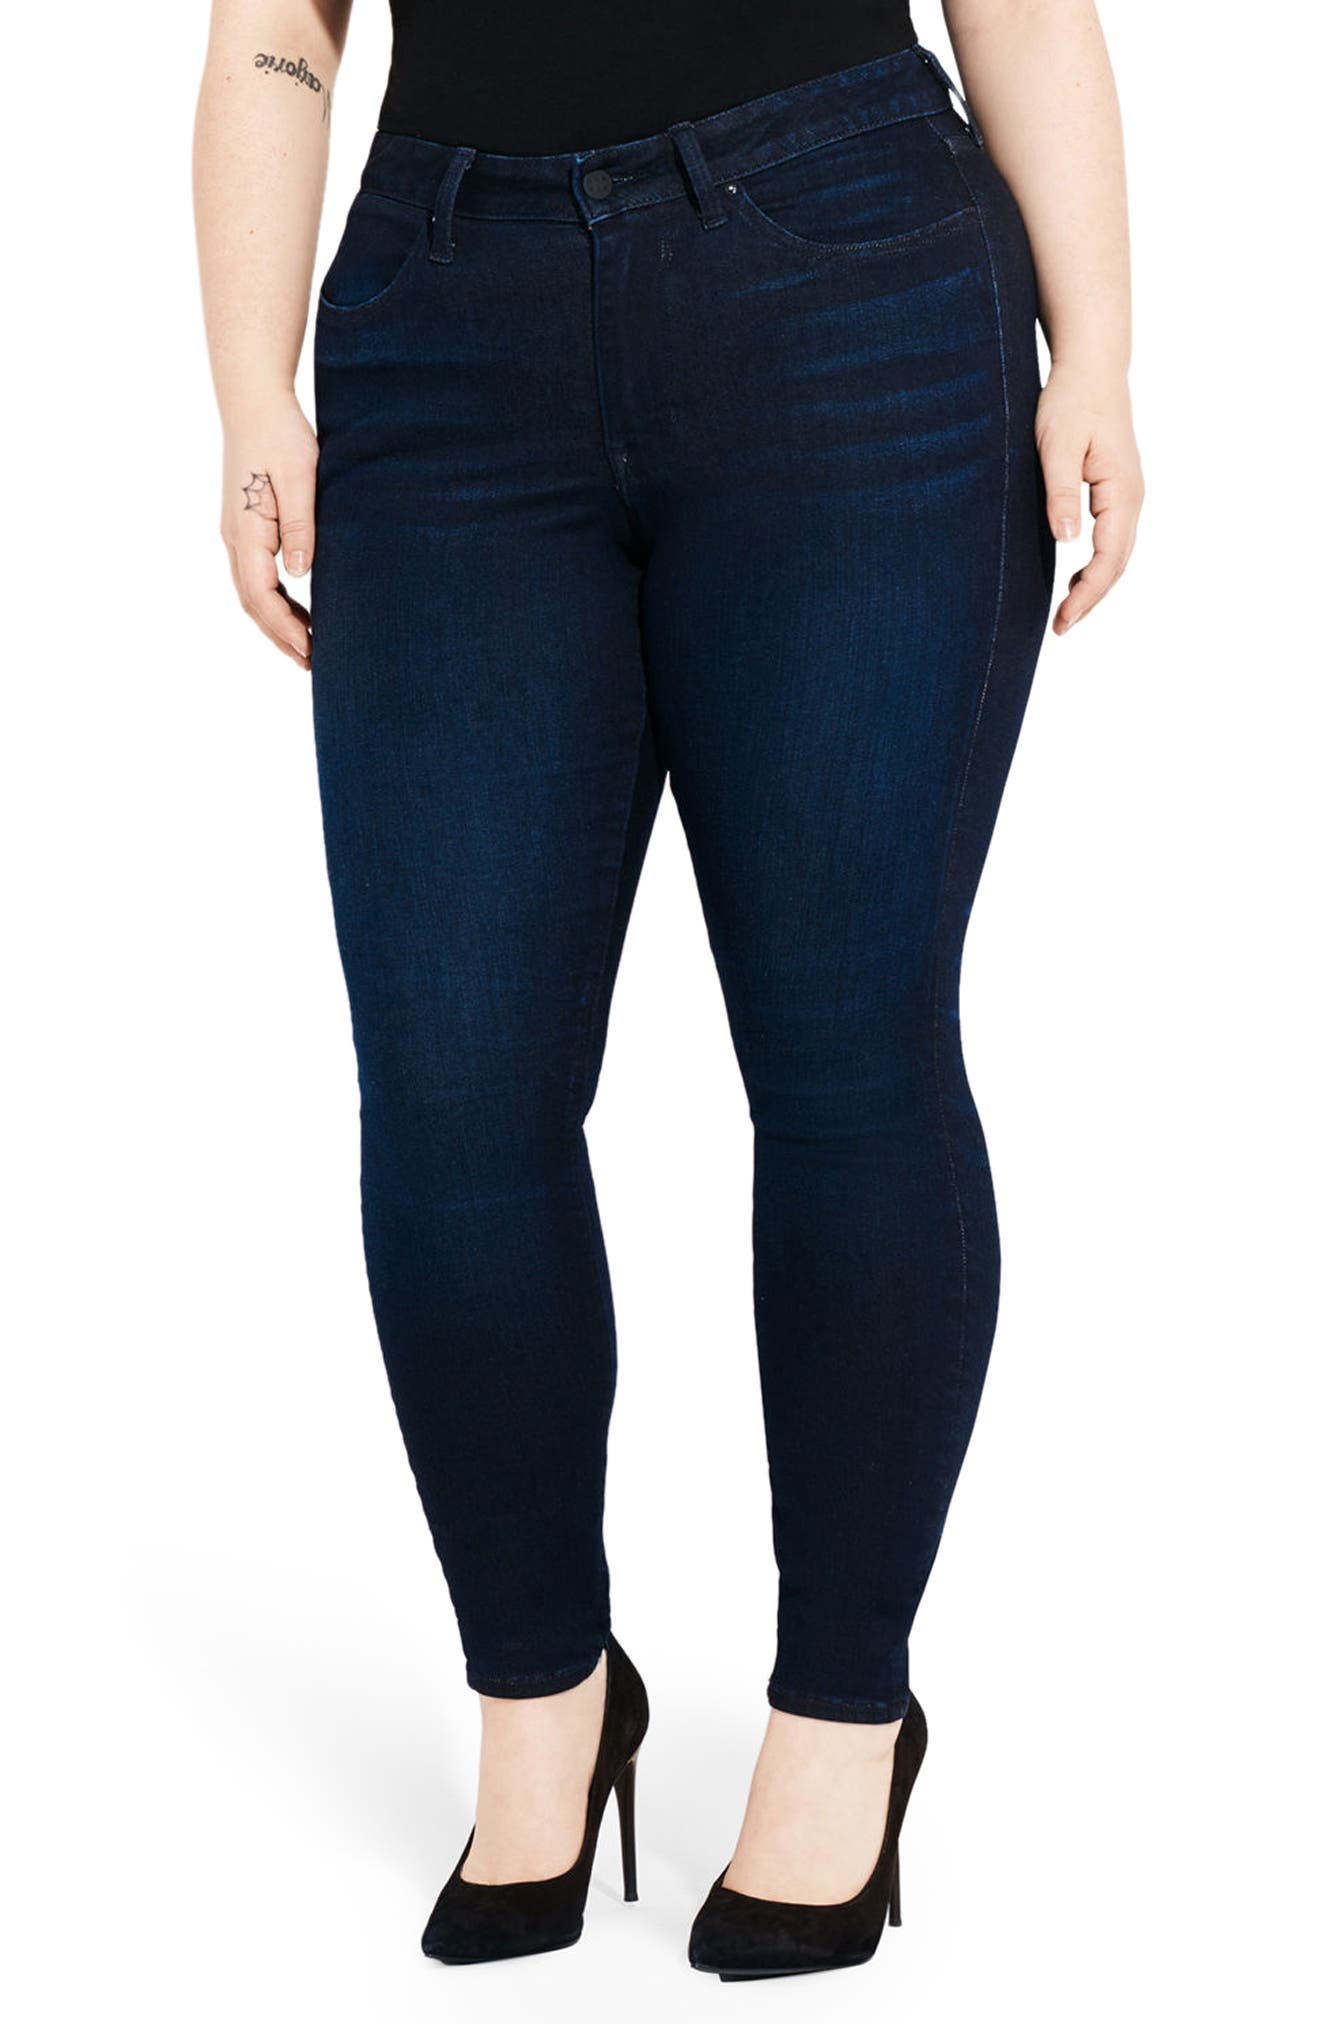 The One Love High Waist Skinny Jeans,                             Alternate thumbnail 2, color,                             400